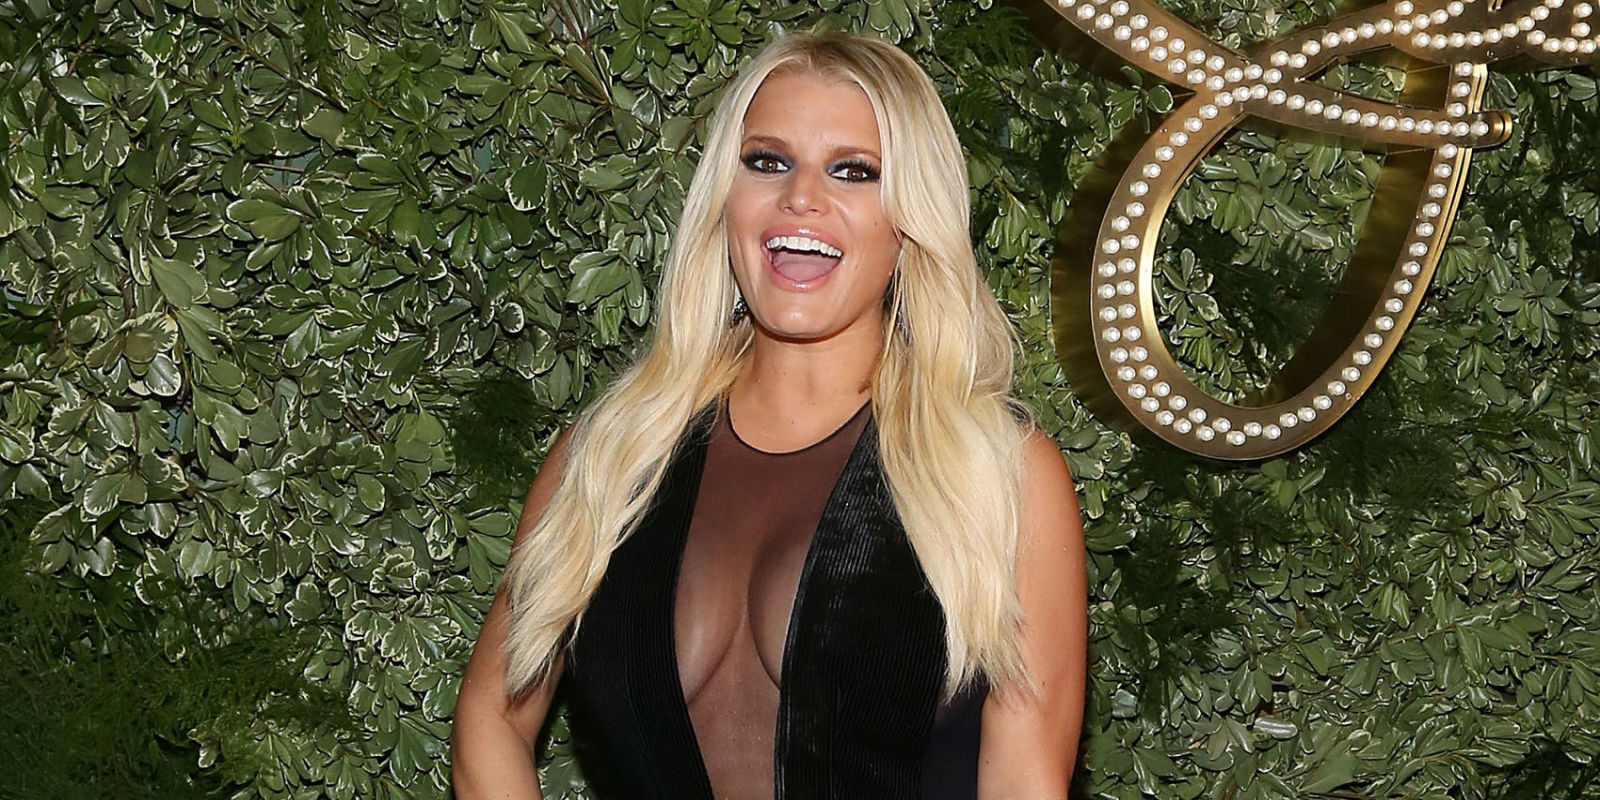 Jessica Simpson Just Shared a Photo of Her Daughter in Her Bathing Suit, And the Internet Lost It